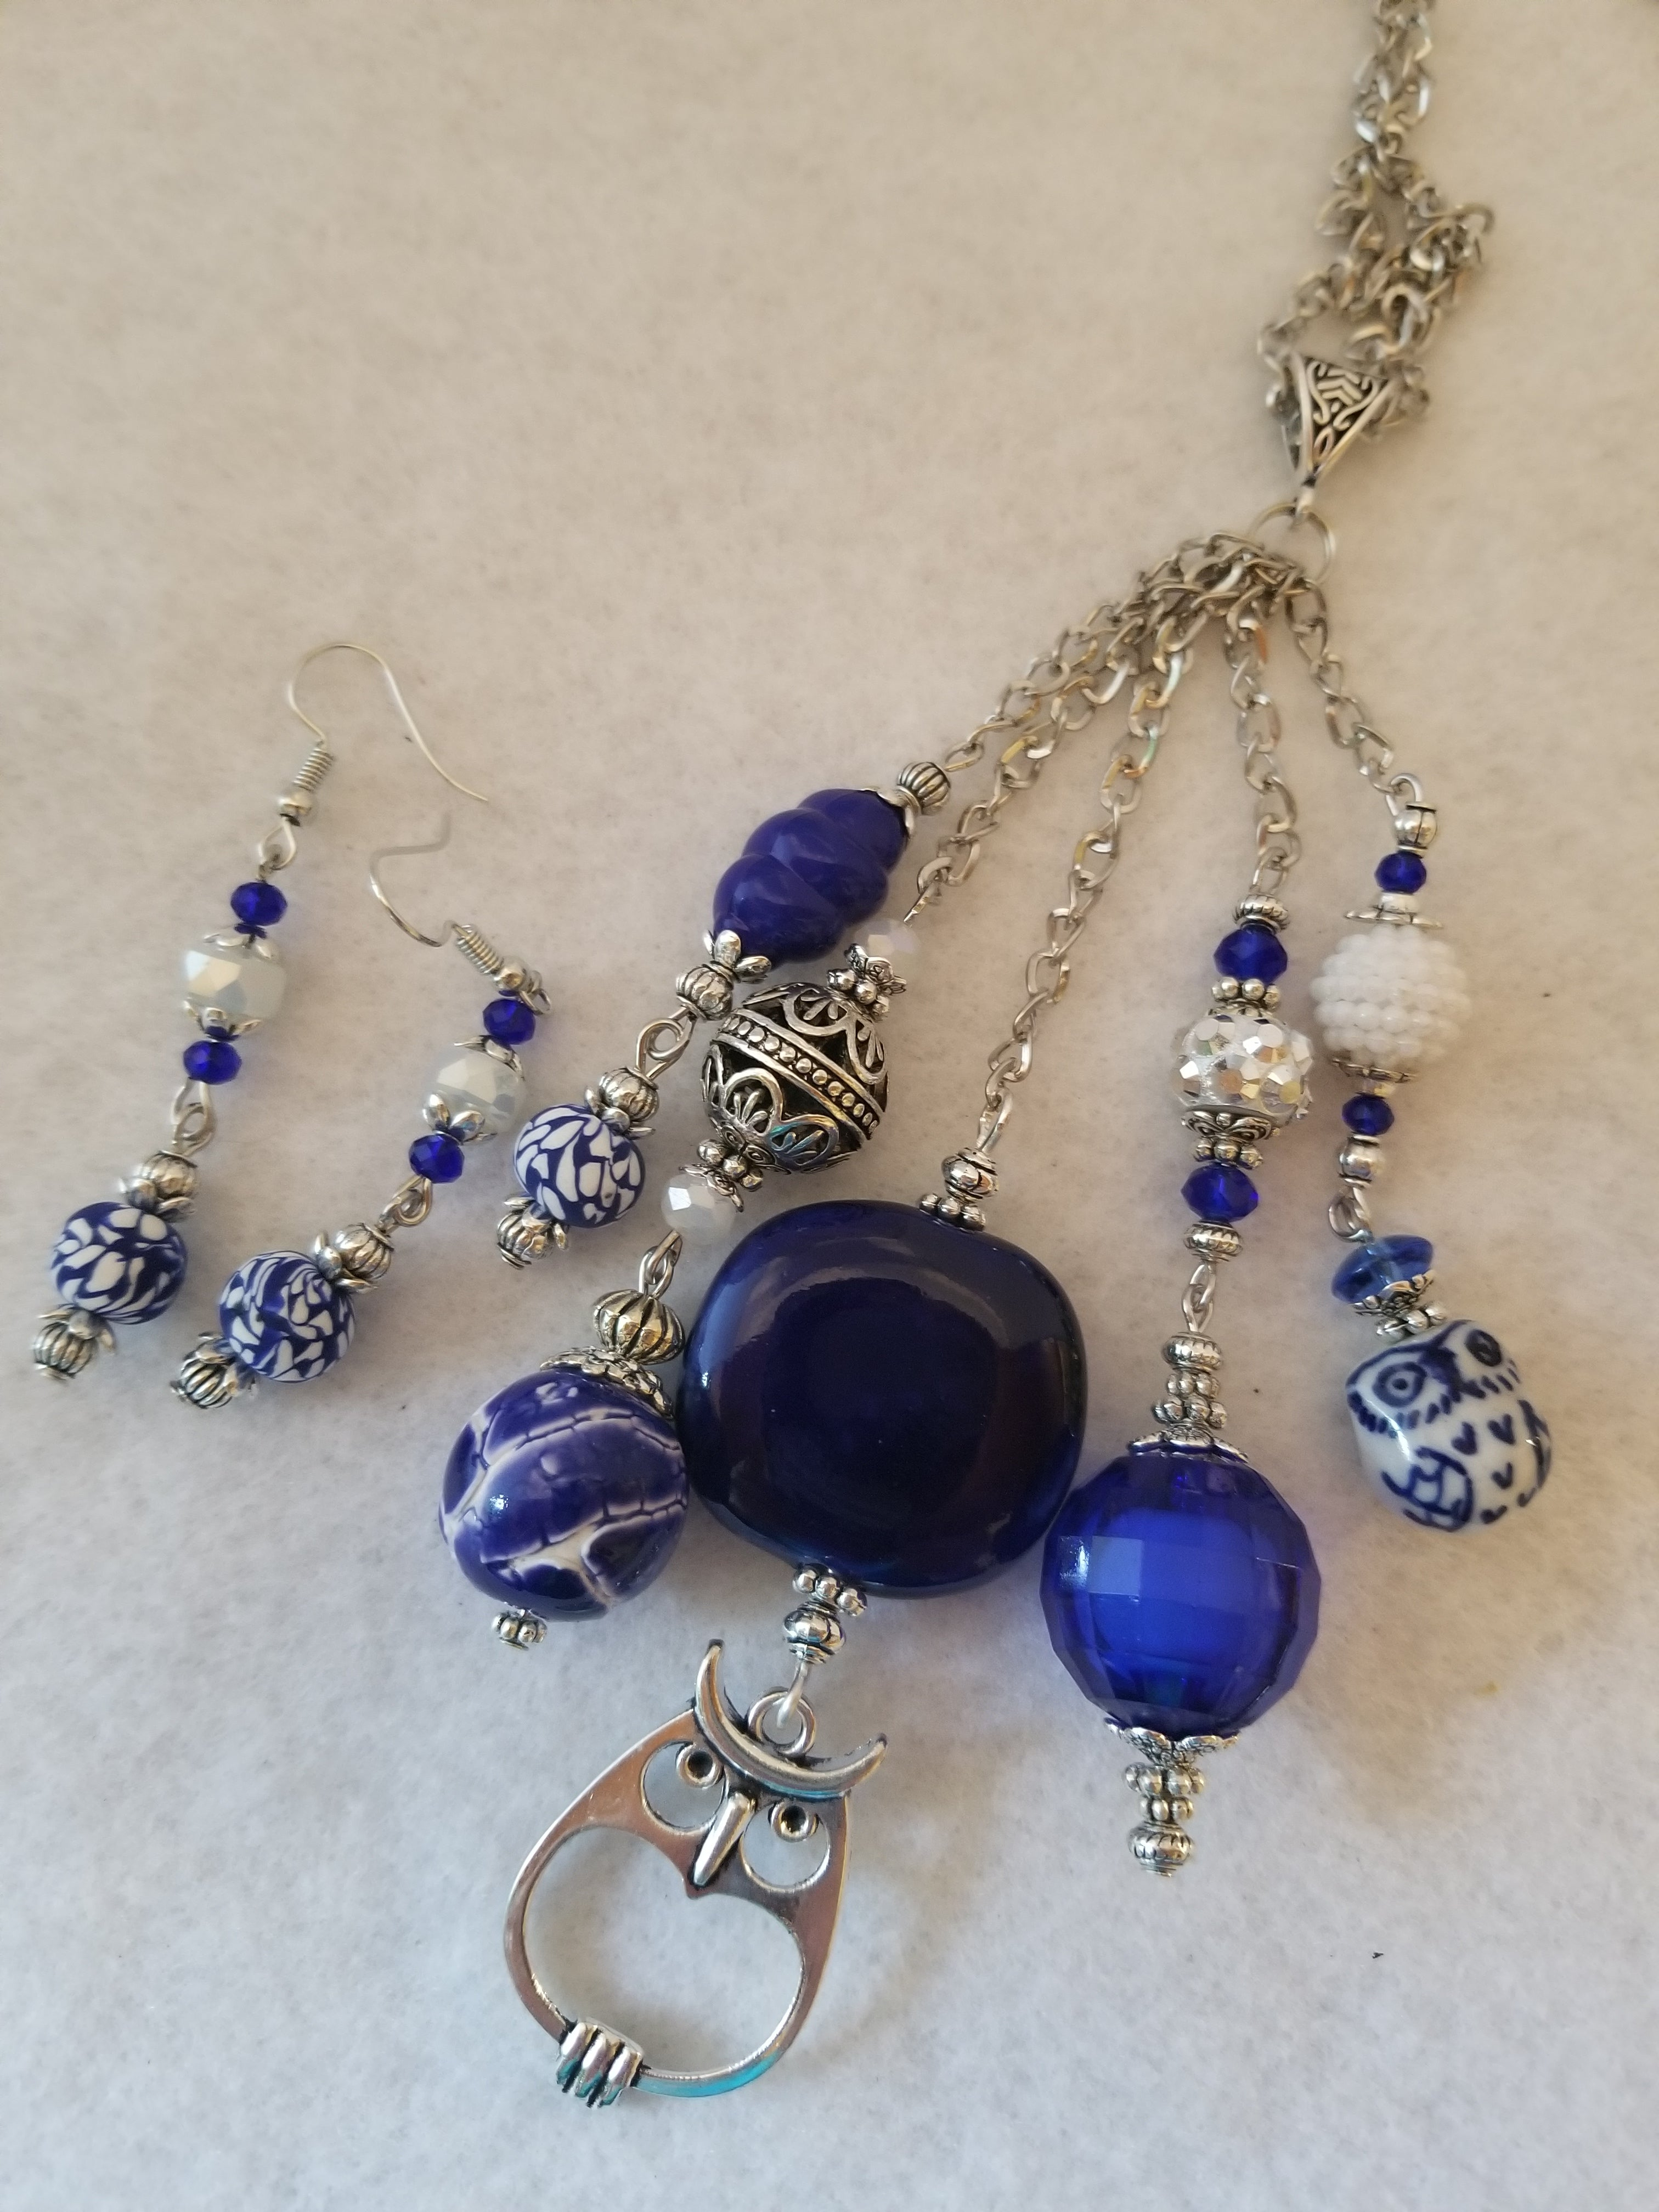 Blue Wisdom Necklace with Earrings